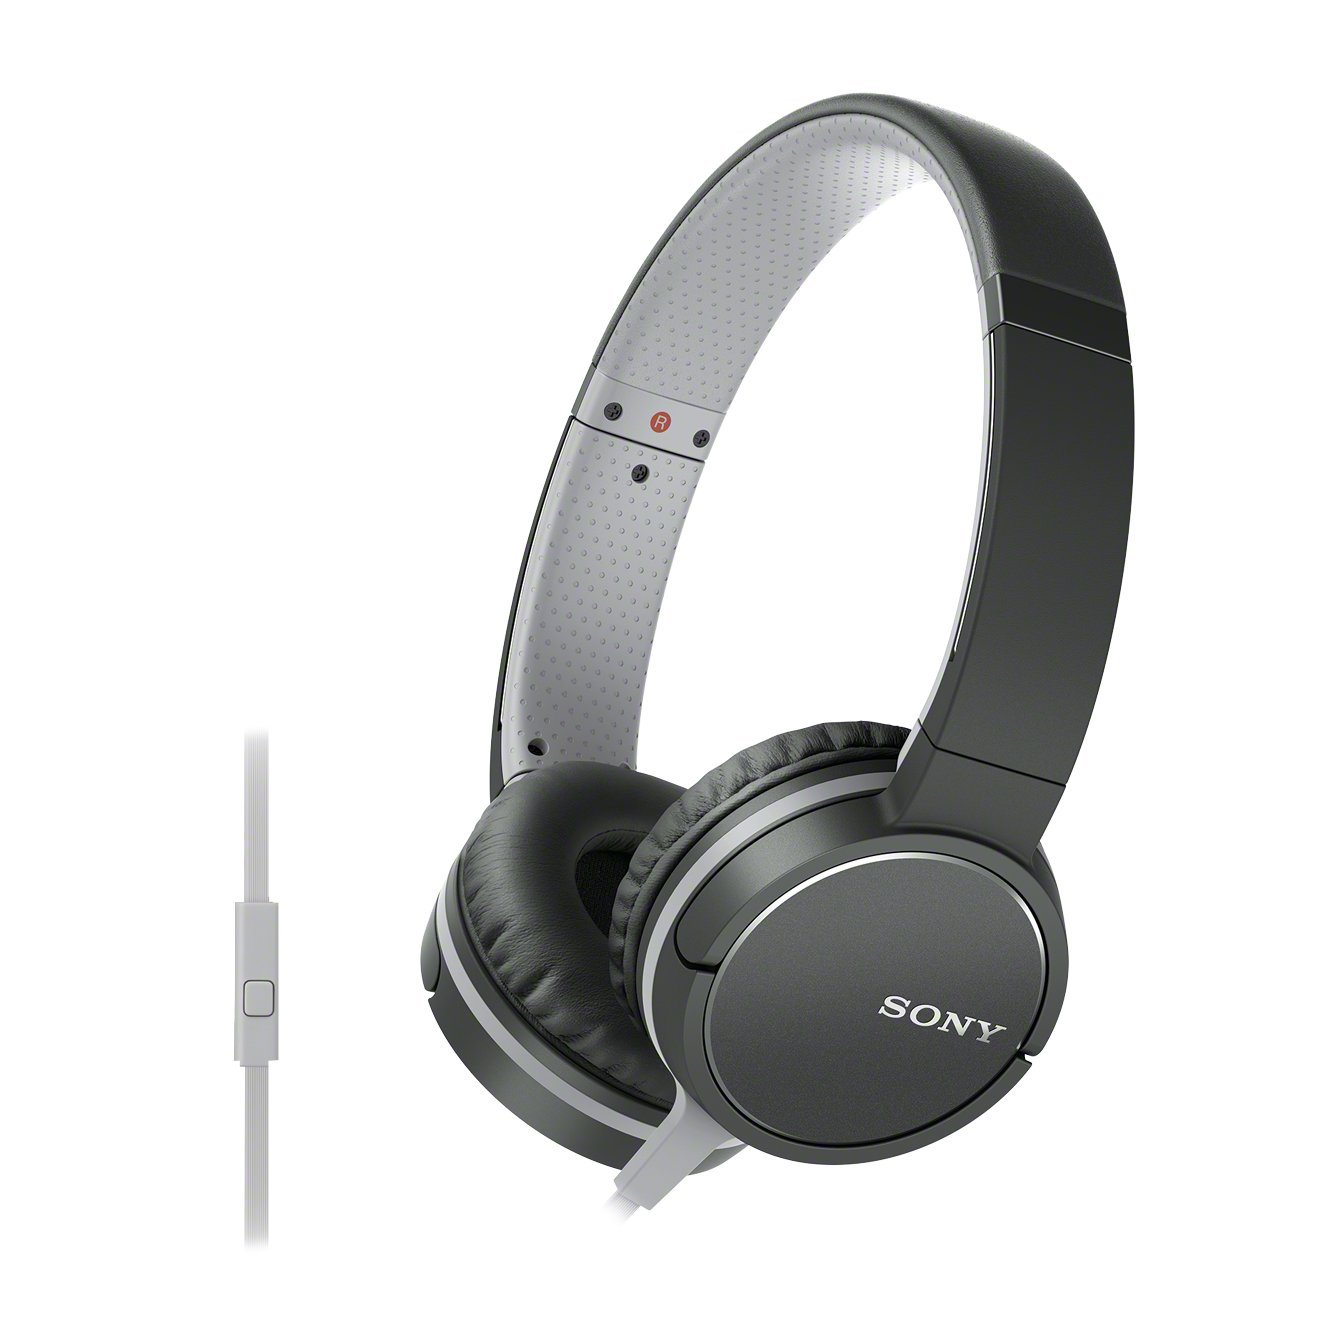 Sony MDR-ZX660AP Lightweight On-Ear Headphone with: Amazon.co.uk:  Electronics